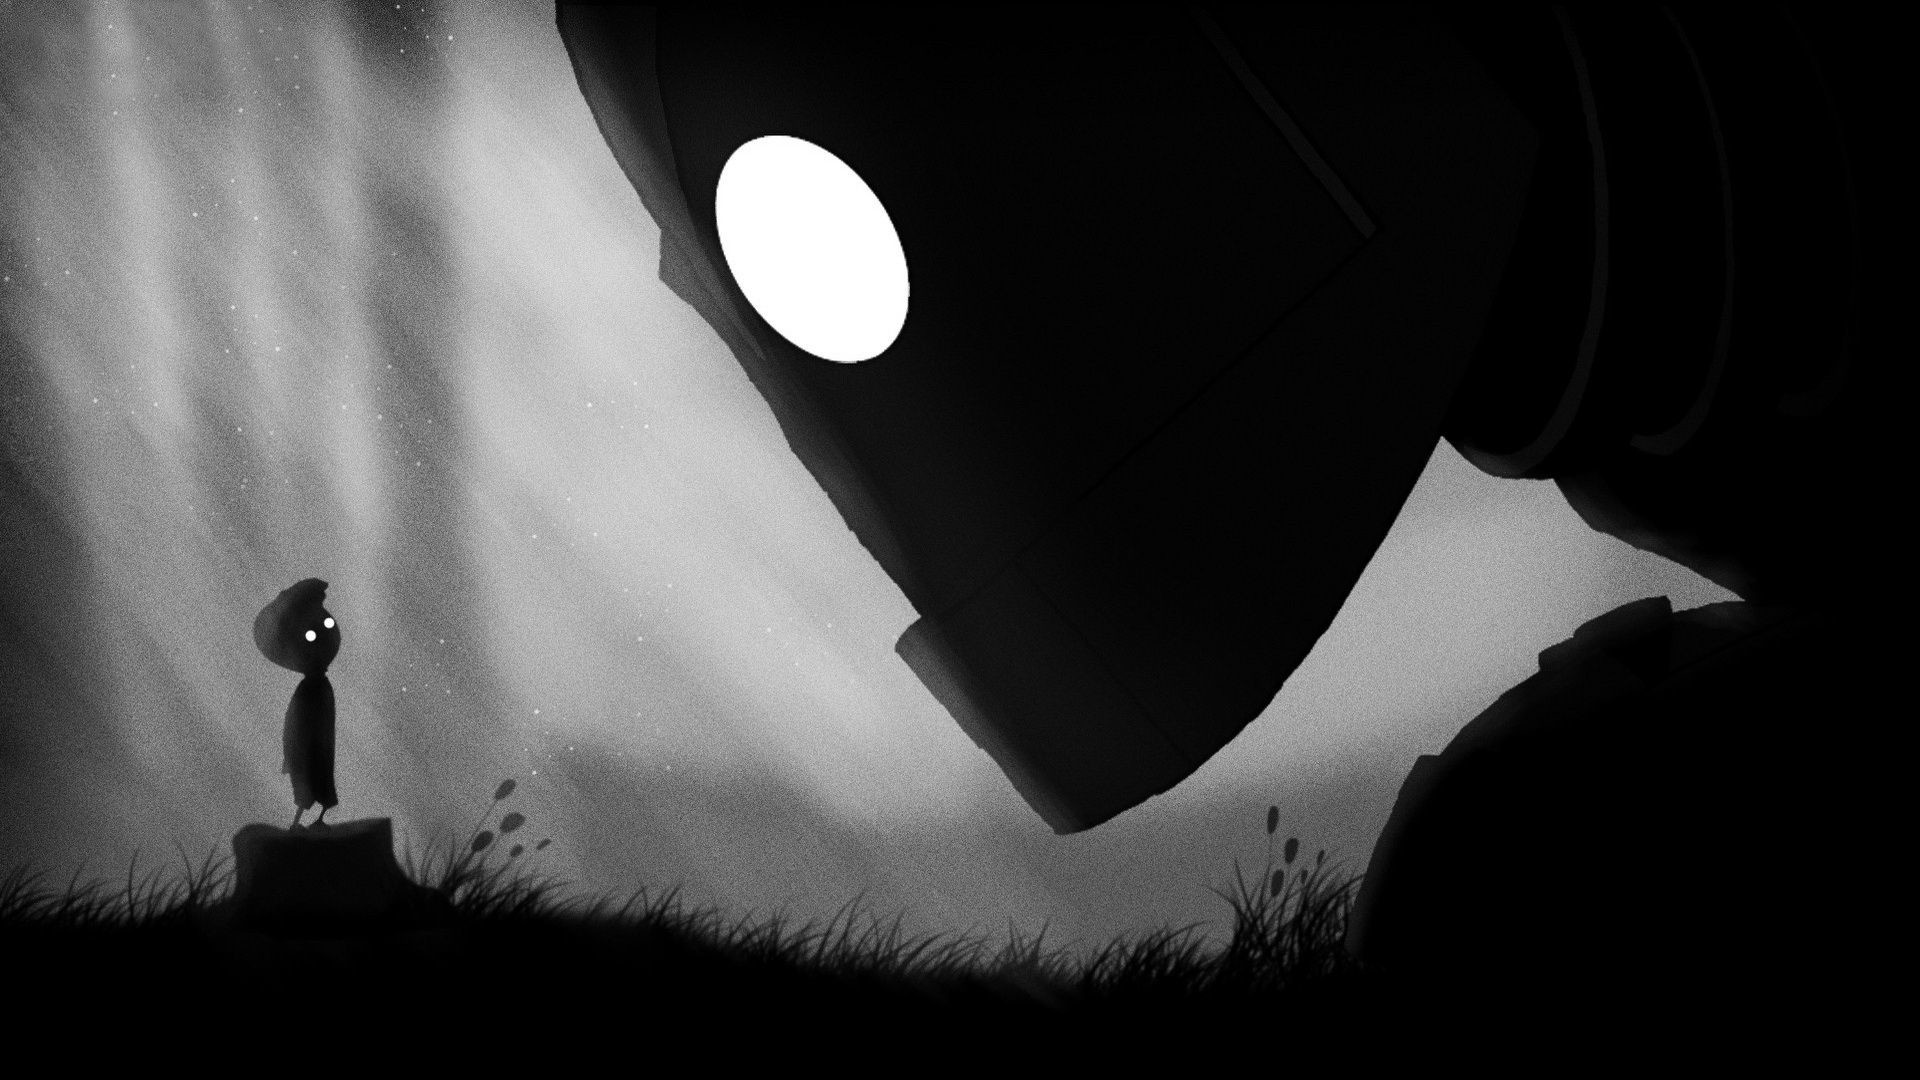 Limbo and Iron Giant Computer Wallpapers, Desktop Backgrounds .